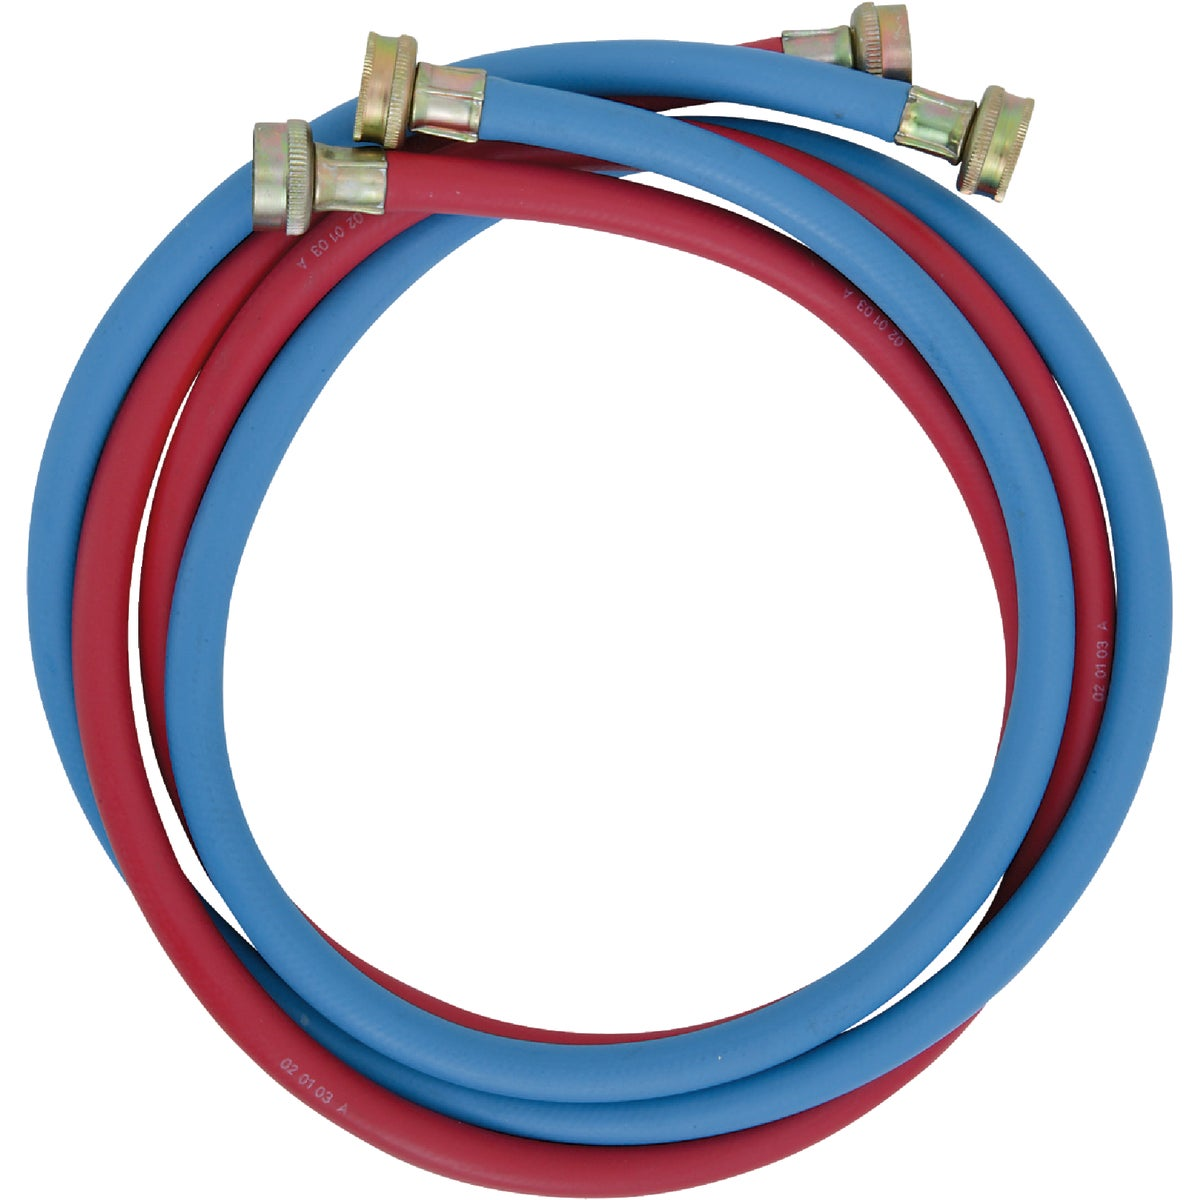 2PK 6' WASH MACHINE HOSE - 093219 by Wm H Harvey Co